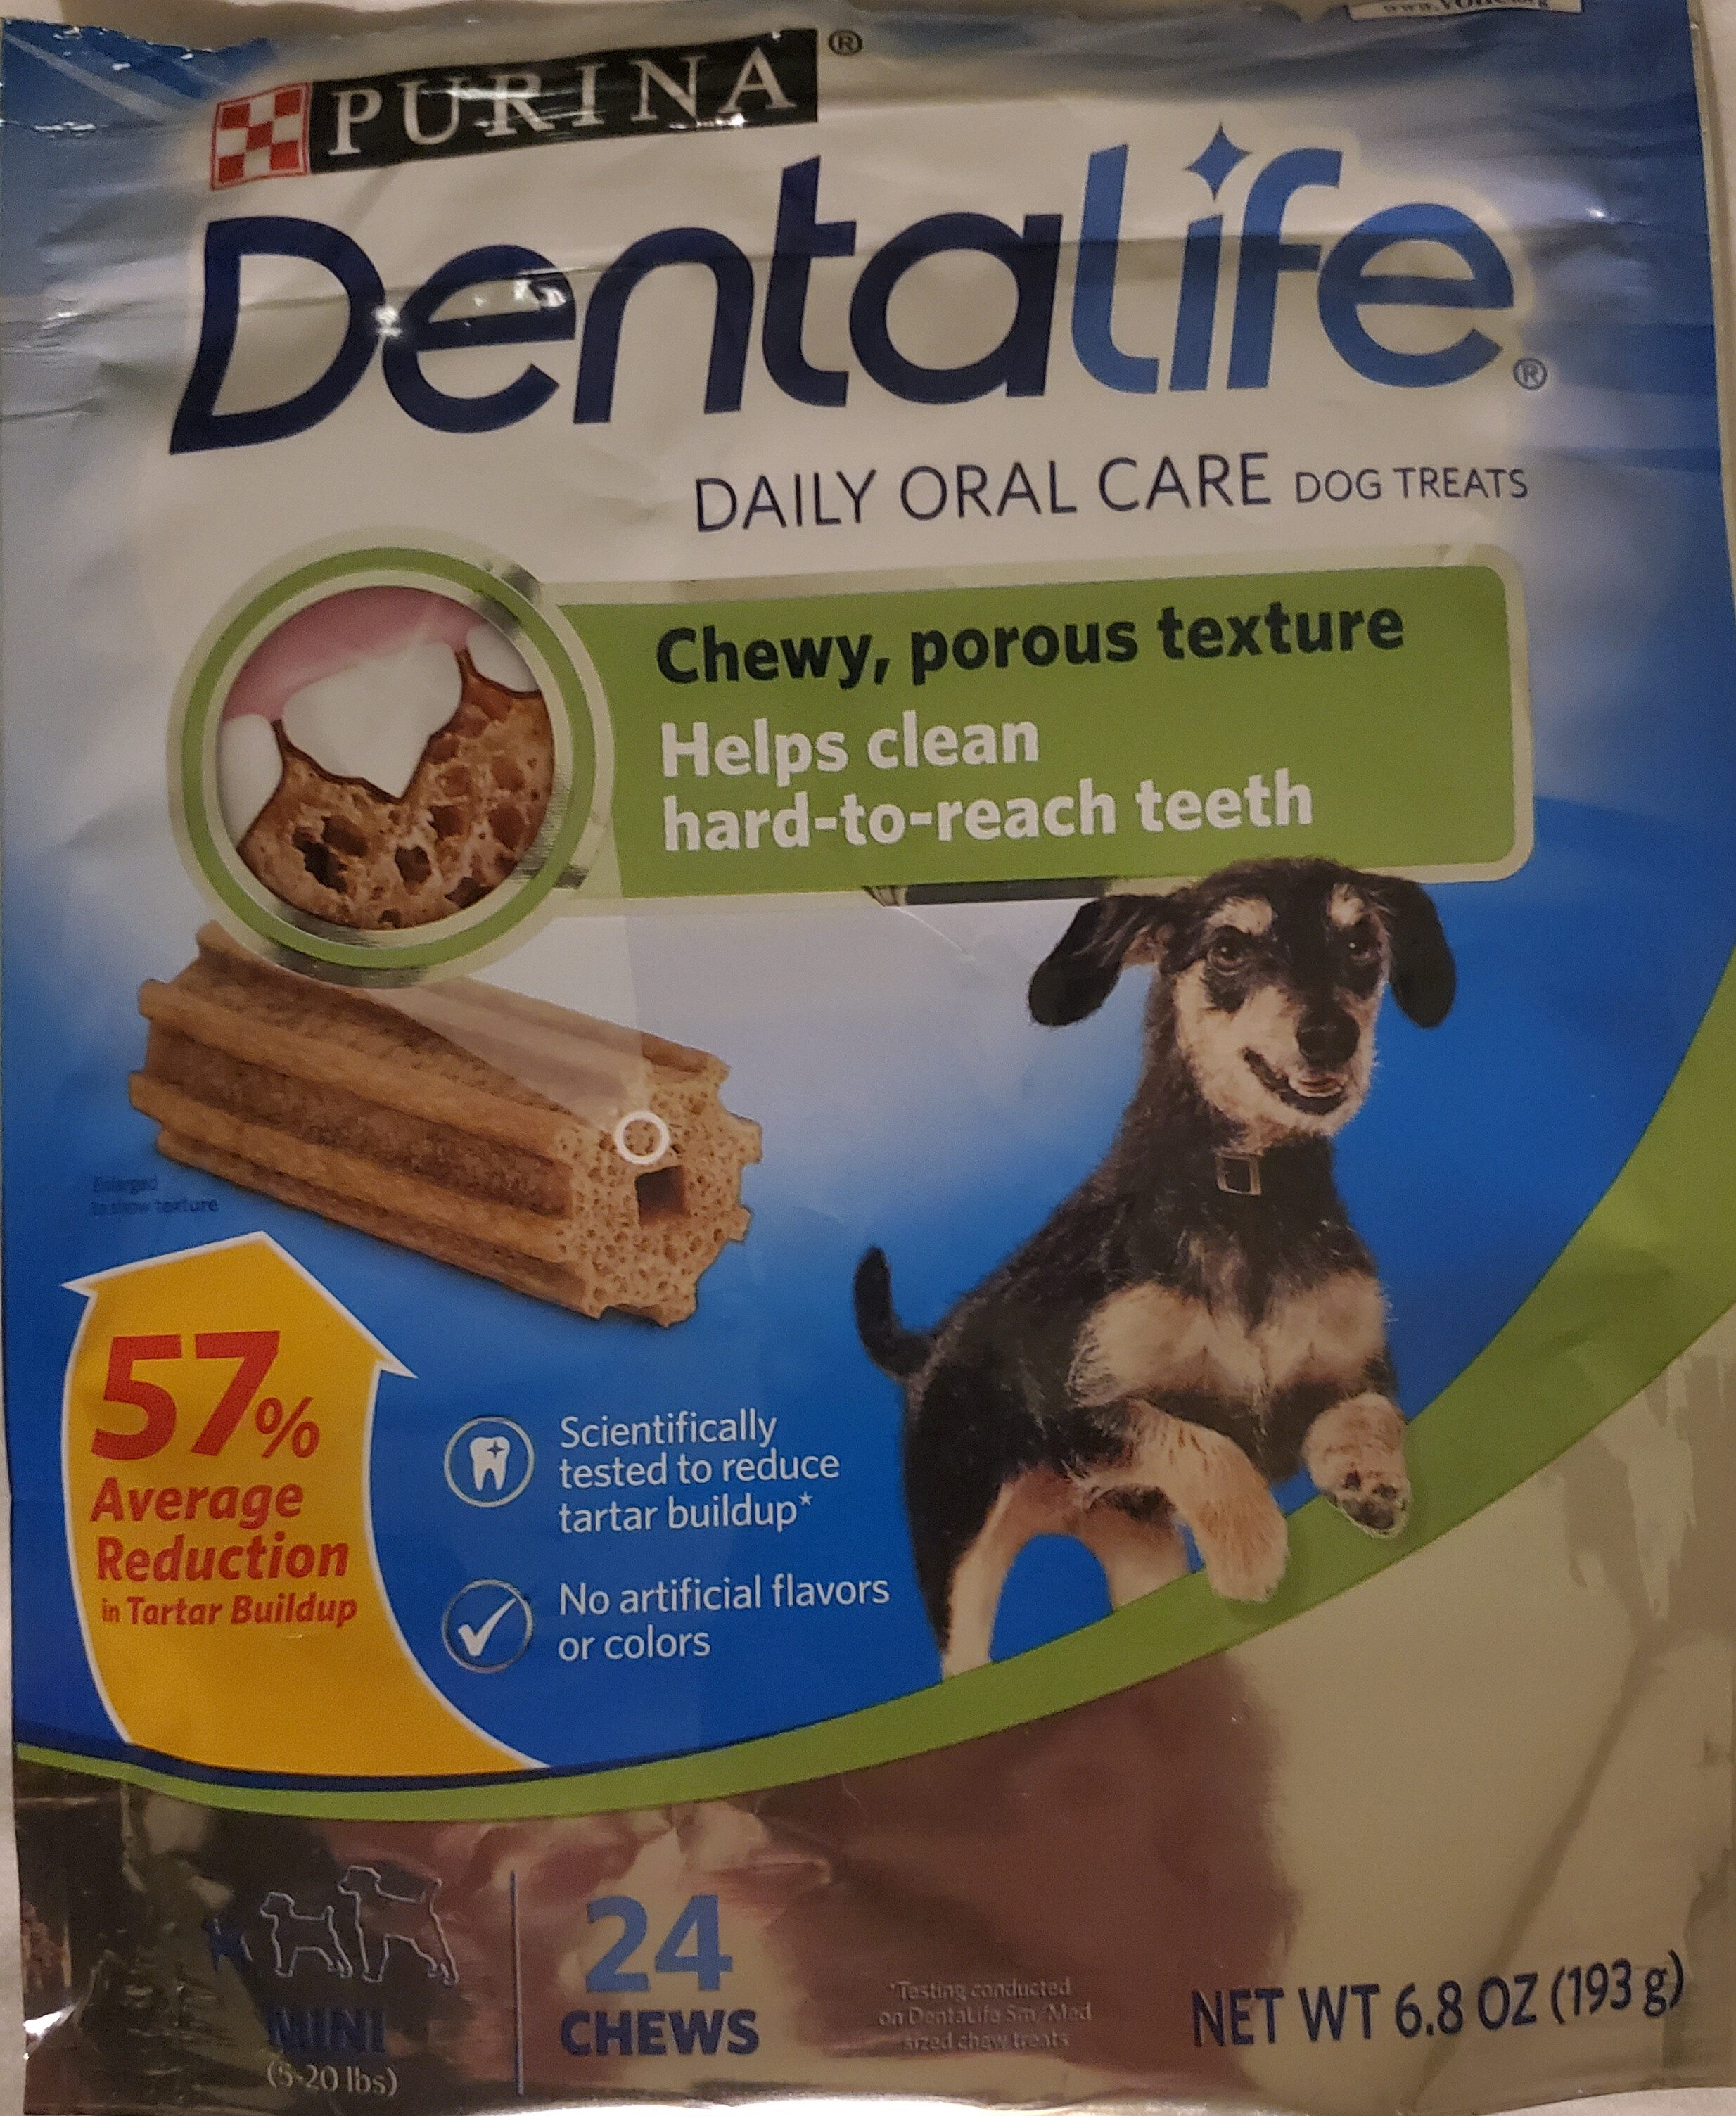 Purina DentaLife Daily Oral Care Mini Chew Treats for Small Dogs - Product - en